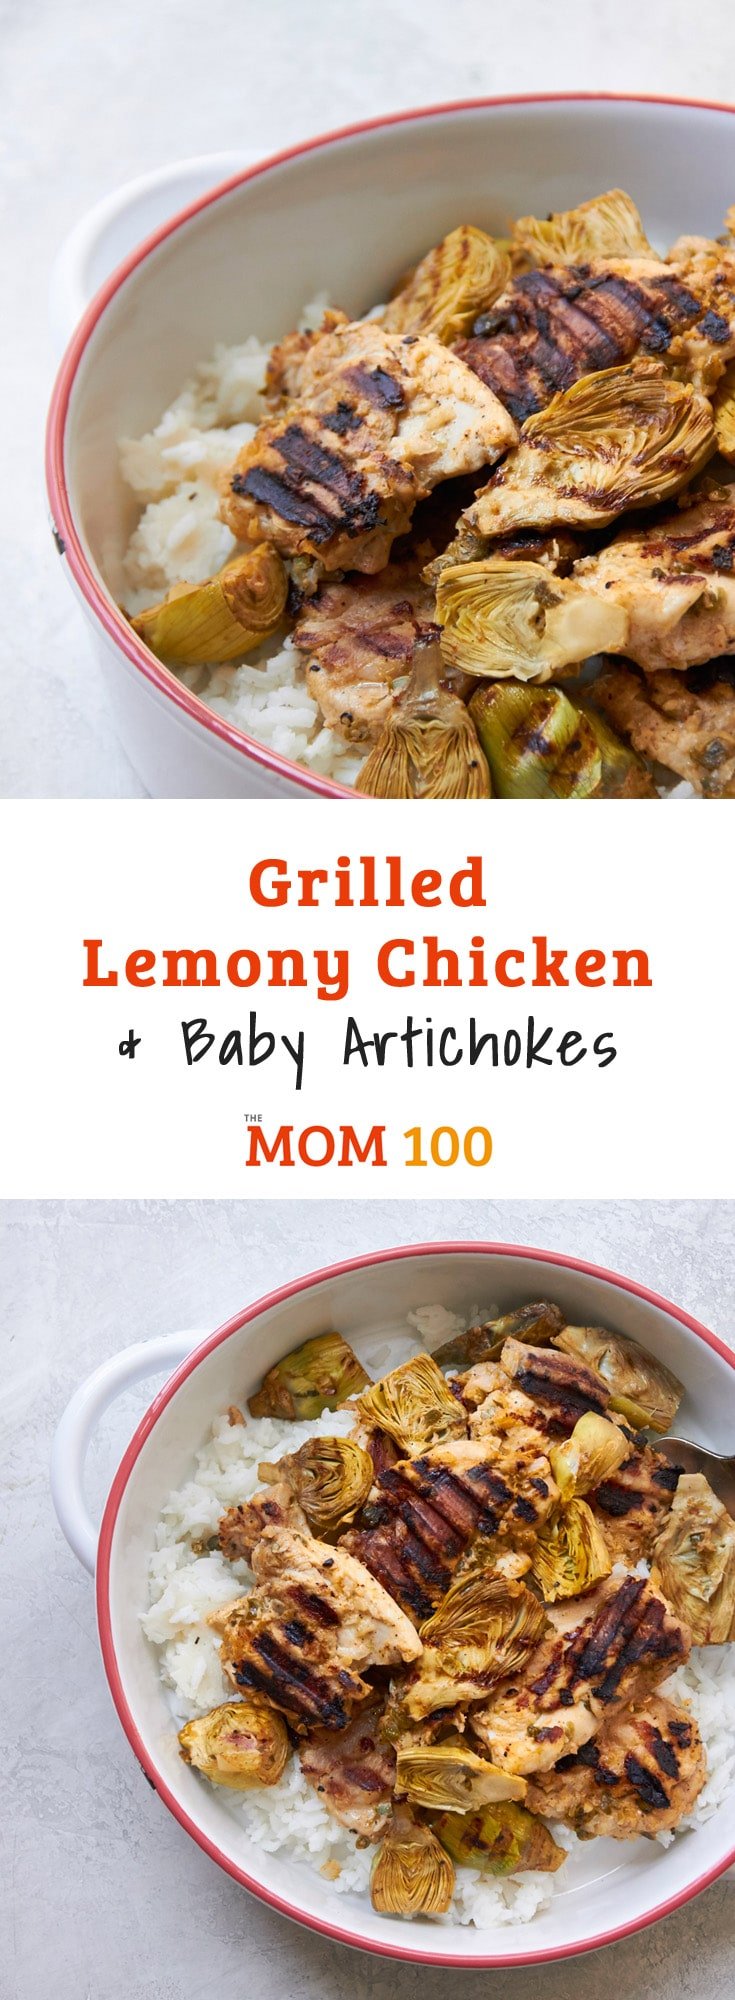 Grilled Lemony Chicken and Baby Artichokes. This grilled chicken shares a super simple citrusy, tangy marinade with tender baby artichokes. Oh, that first grilled meal of the season…that's the real sign of spring.